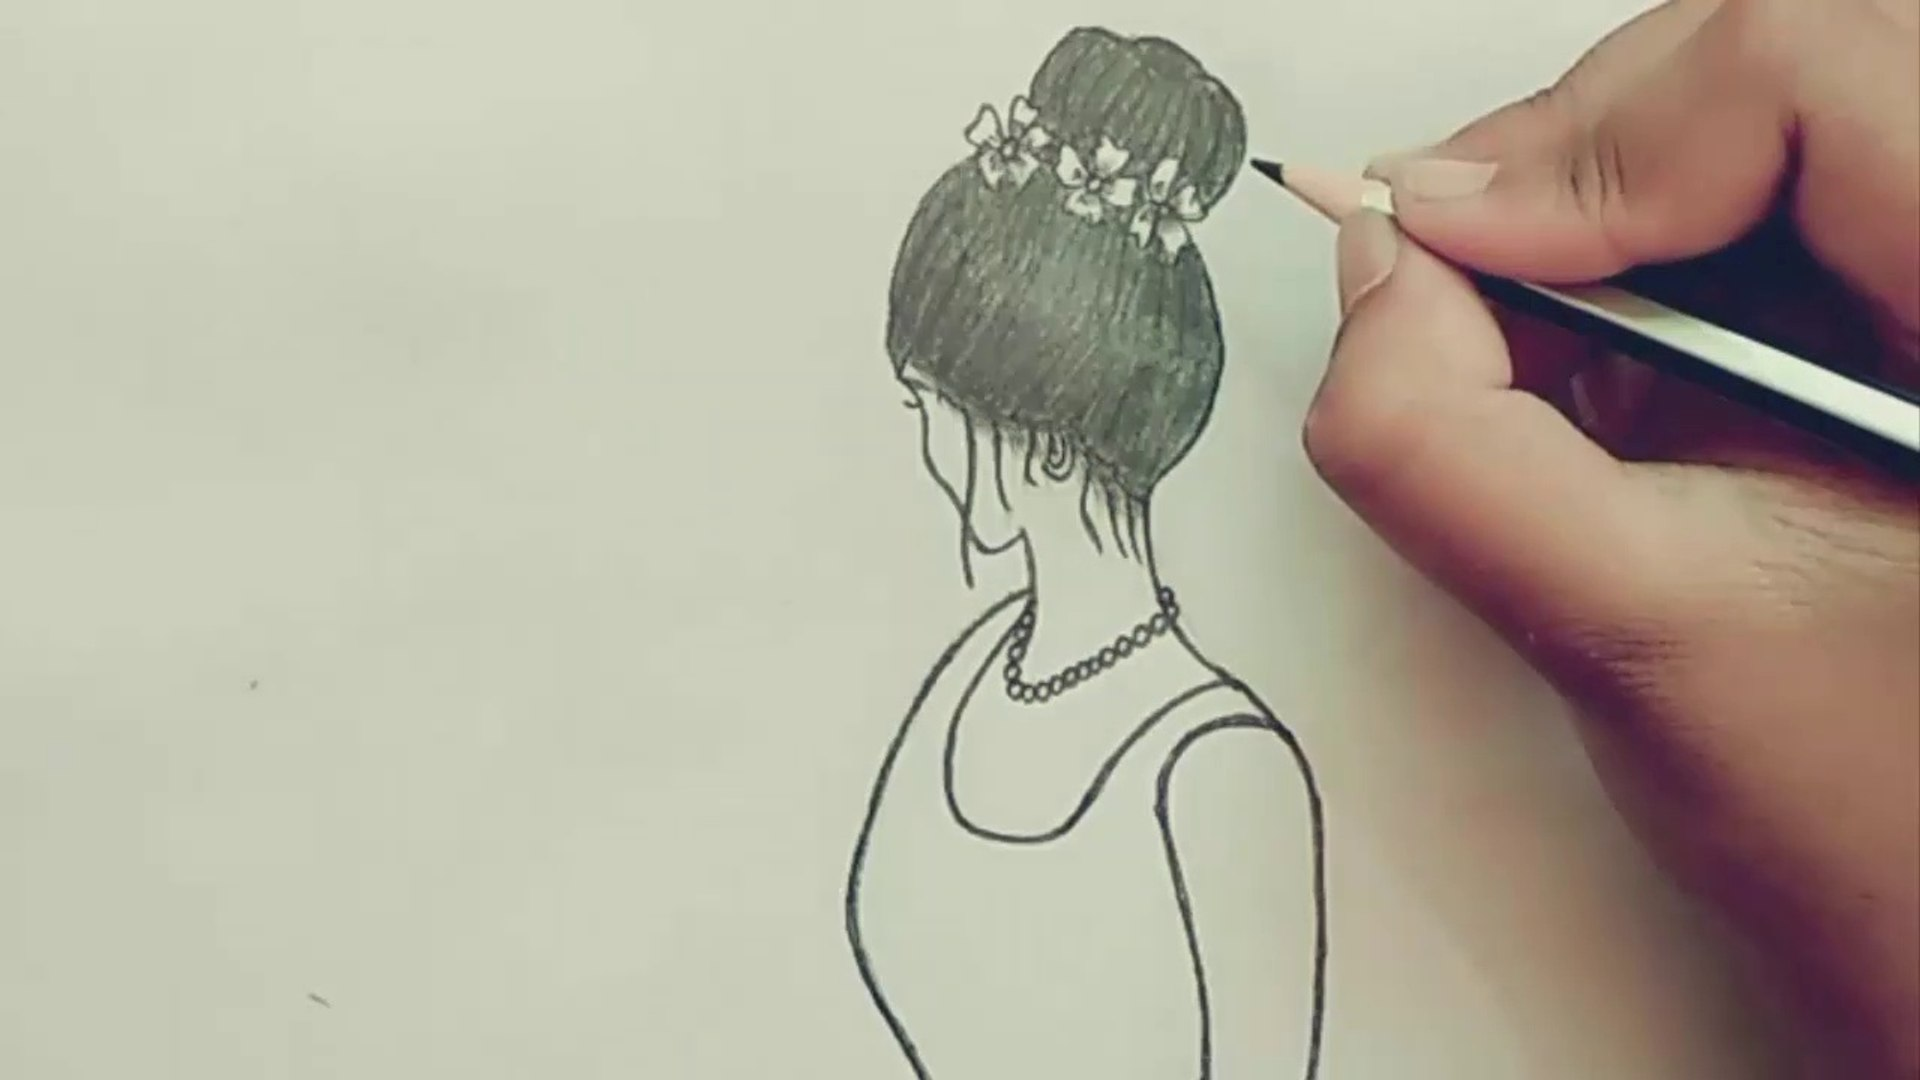 How To Draw A Beautiful Lady Sketch Draw With Paper Pencil Art 8 Paper Pencil Sketch Video Dailymotion